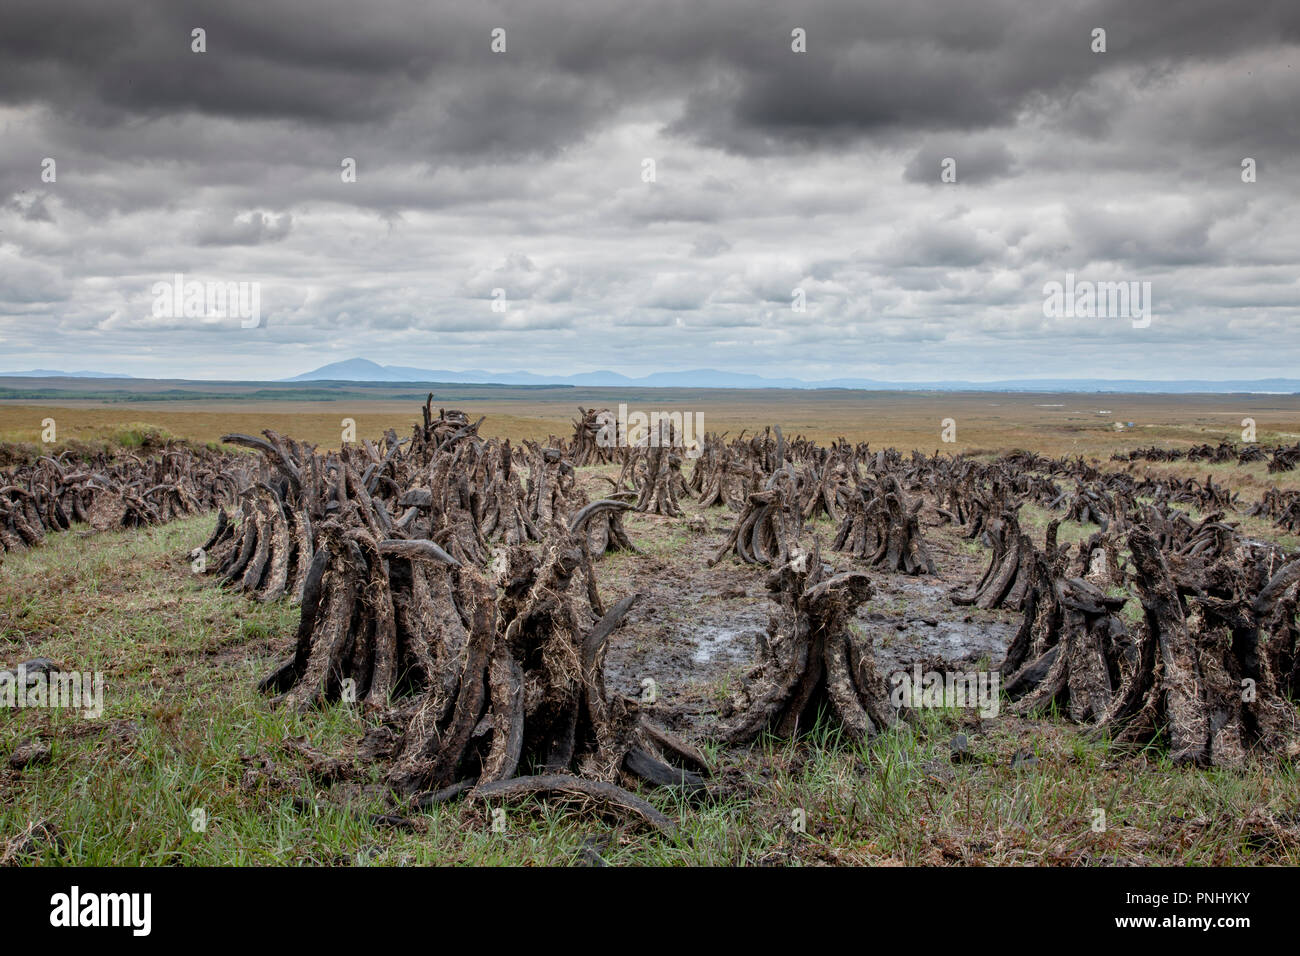 County Sligo, Sligo, Ireland. 13th August, 2009. Sods of Turf drying in the summer in a bog in County Sligo, Ireland. - Stock Image